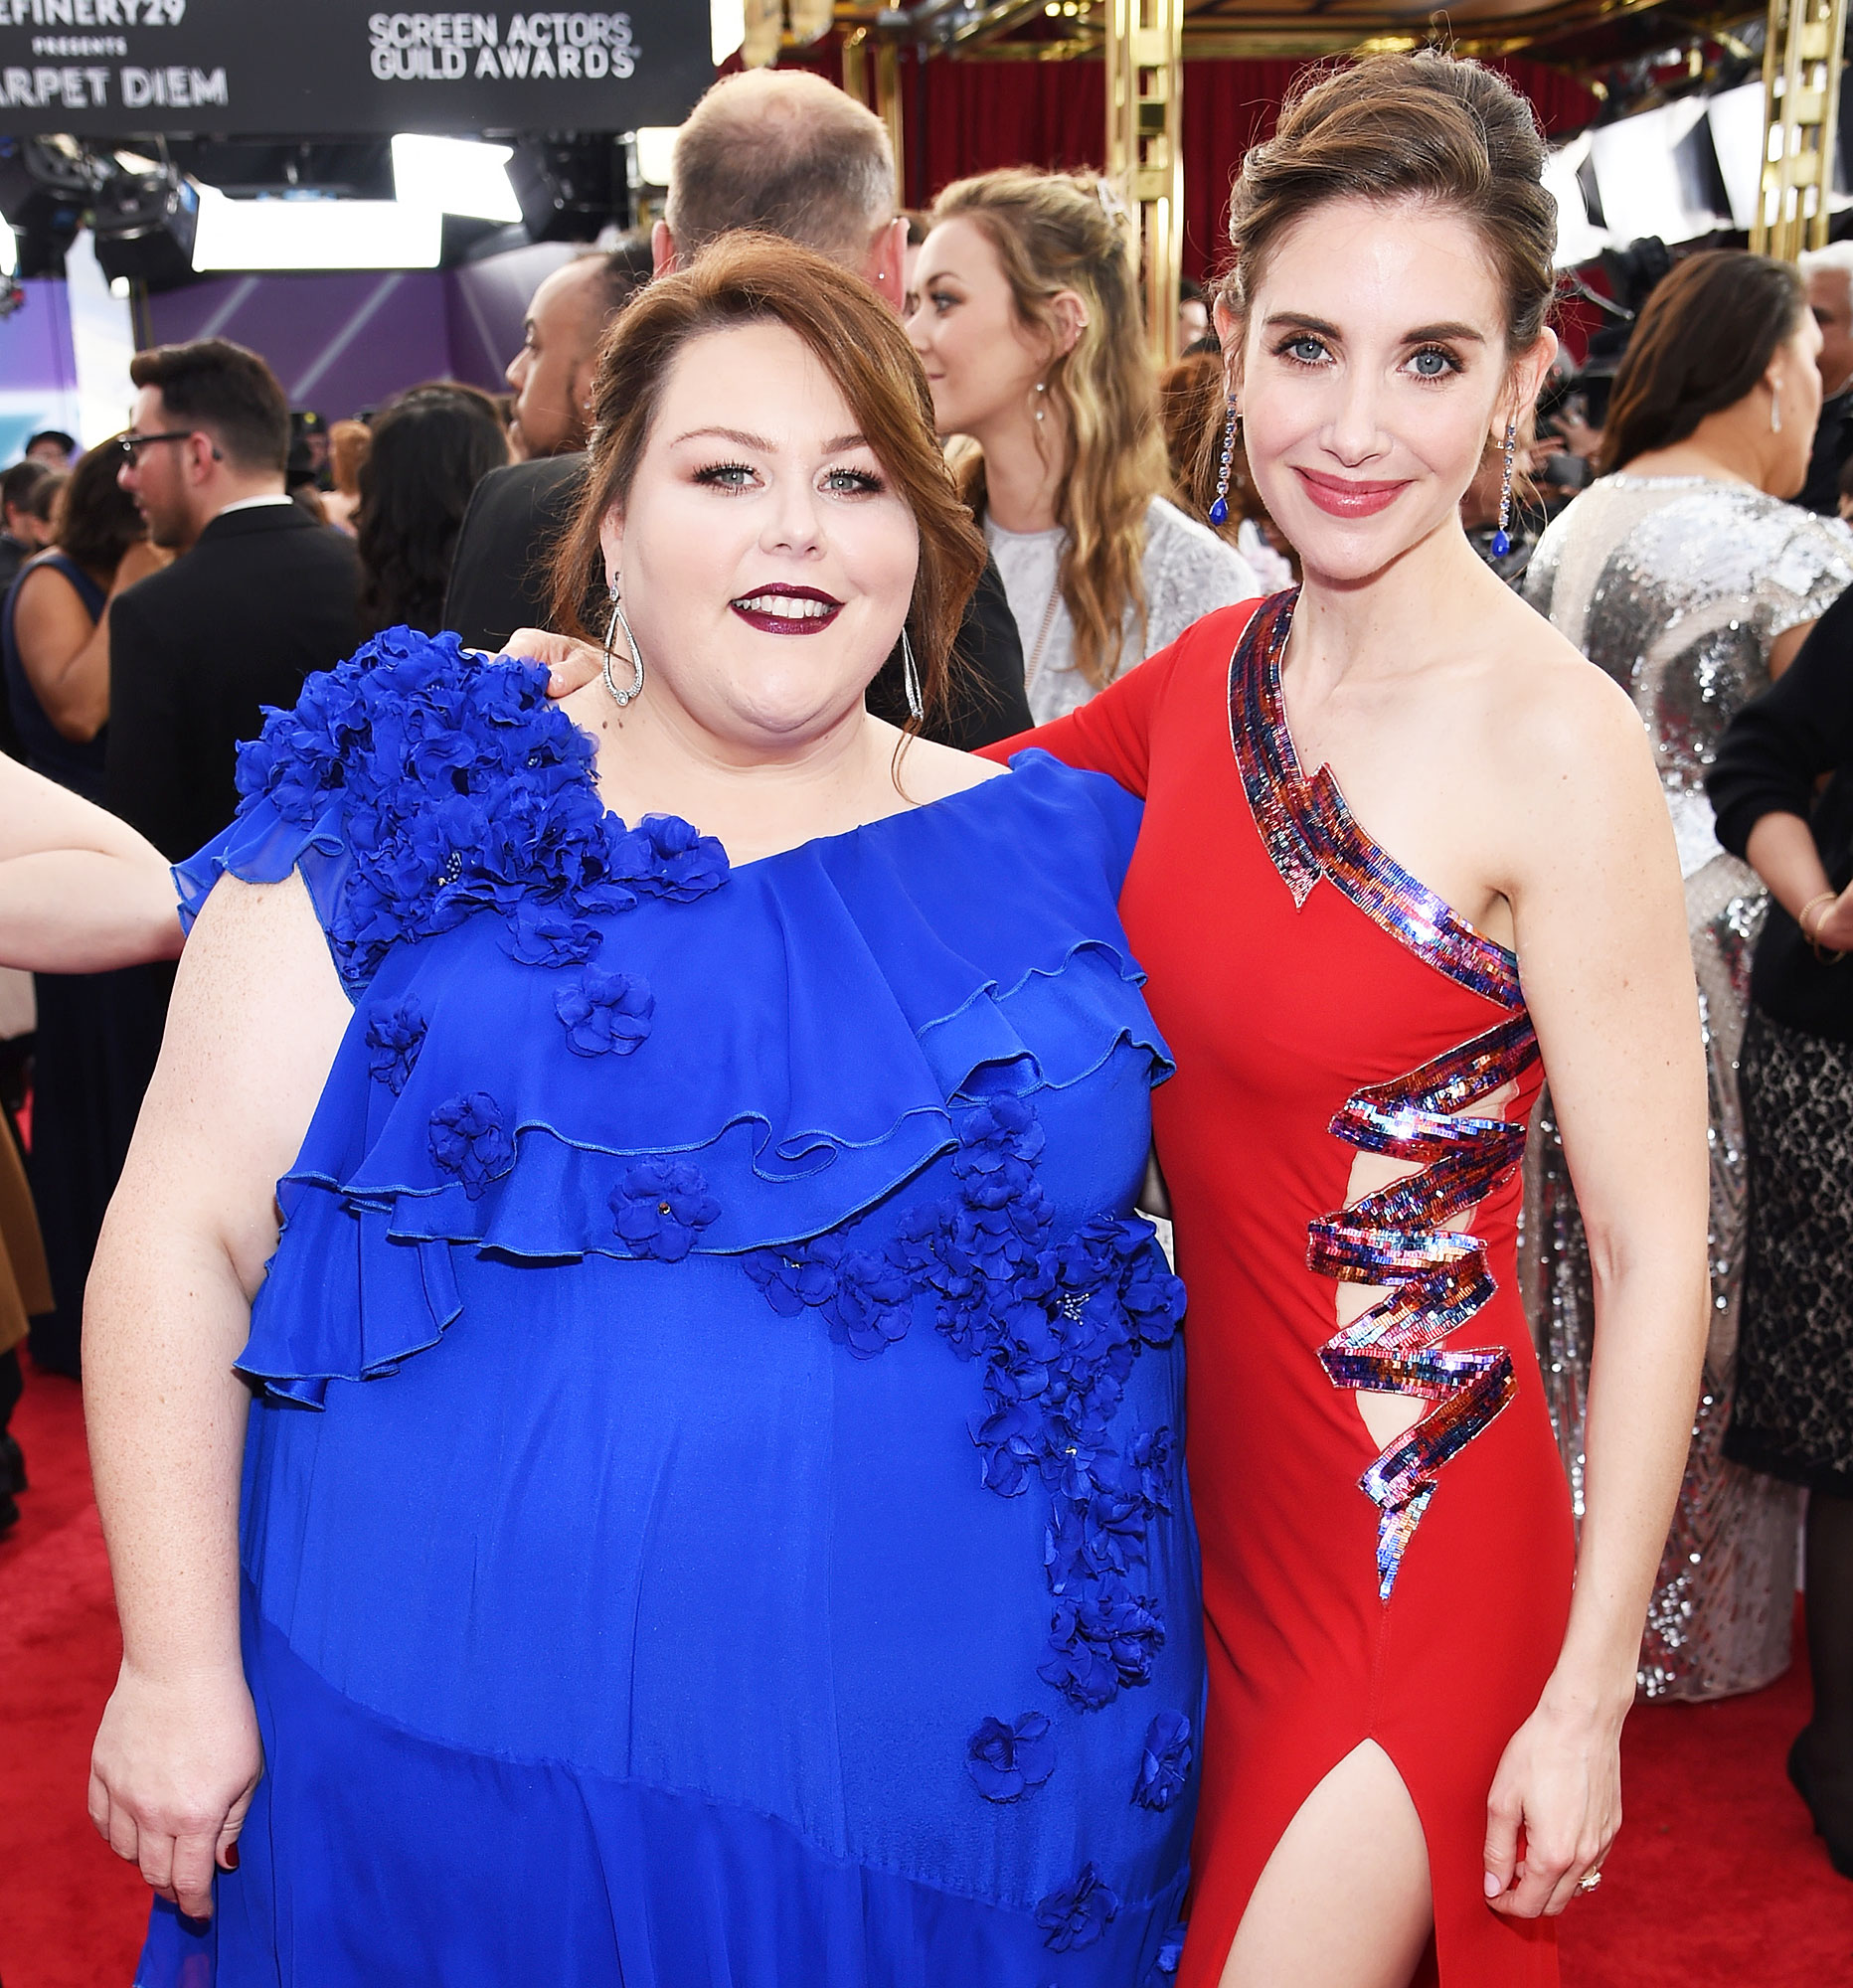 Chrissy Metz Says She and Alison Brie 'Obviously Are Friends' After Golden Globes 2019 Hot Mic Confusion